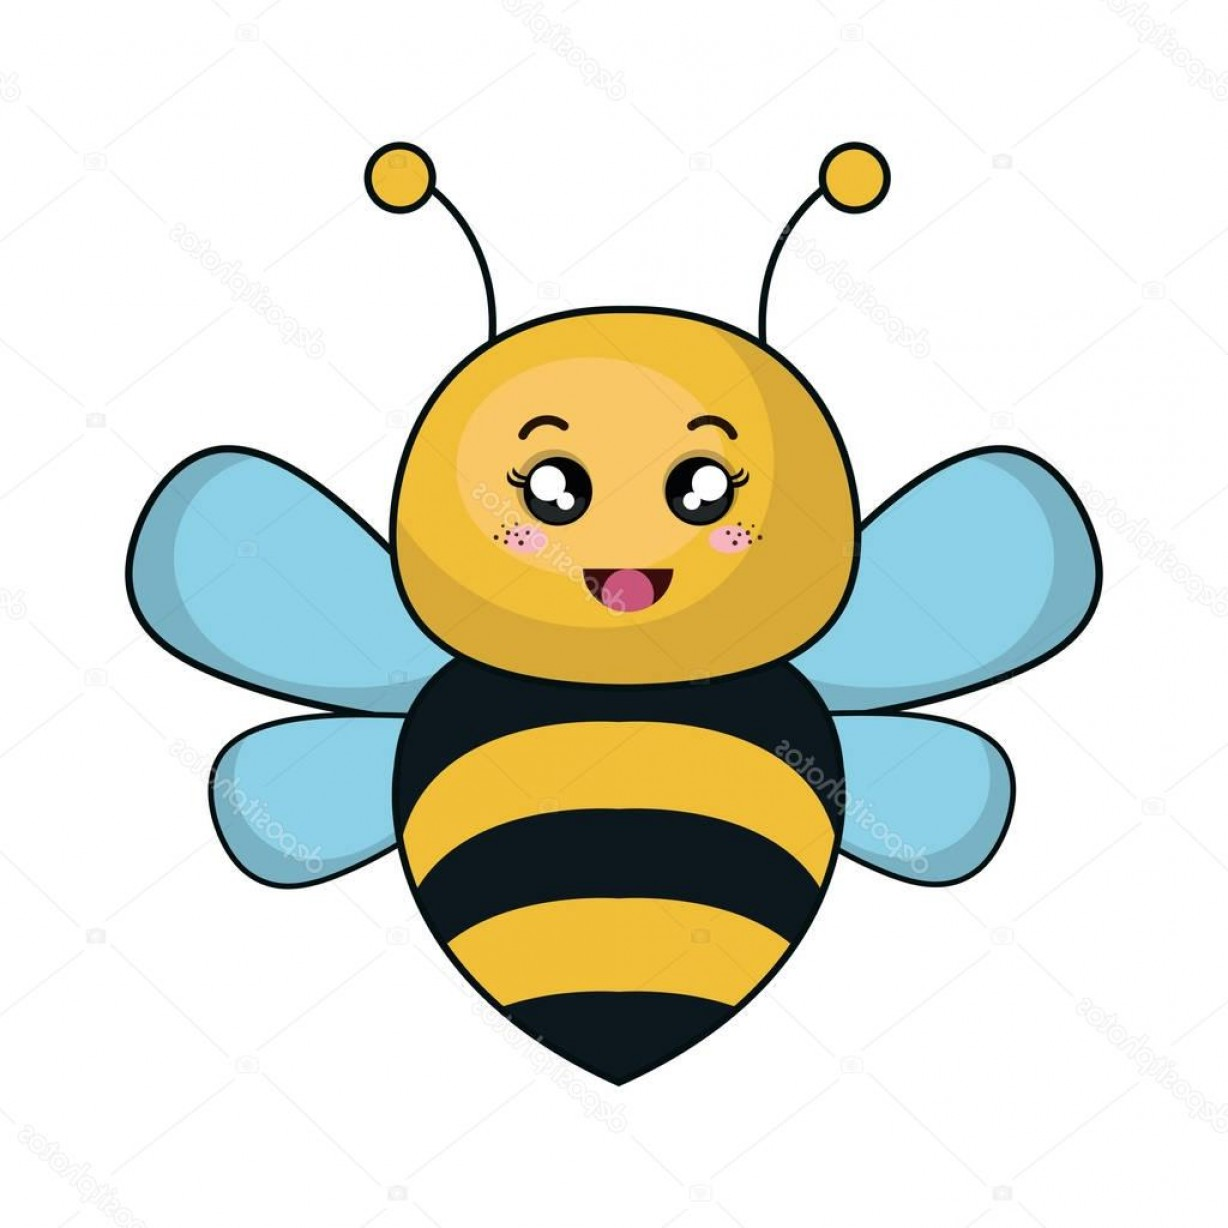 Kawaii Bug Vector: Stock Illustration Cute Bee Animal Kawaii Style